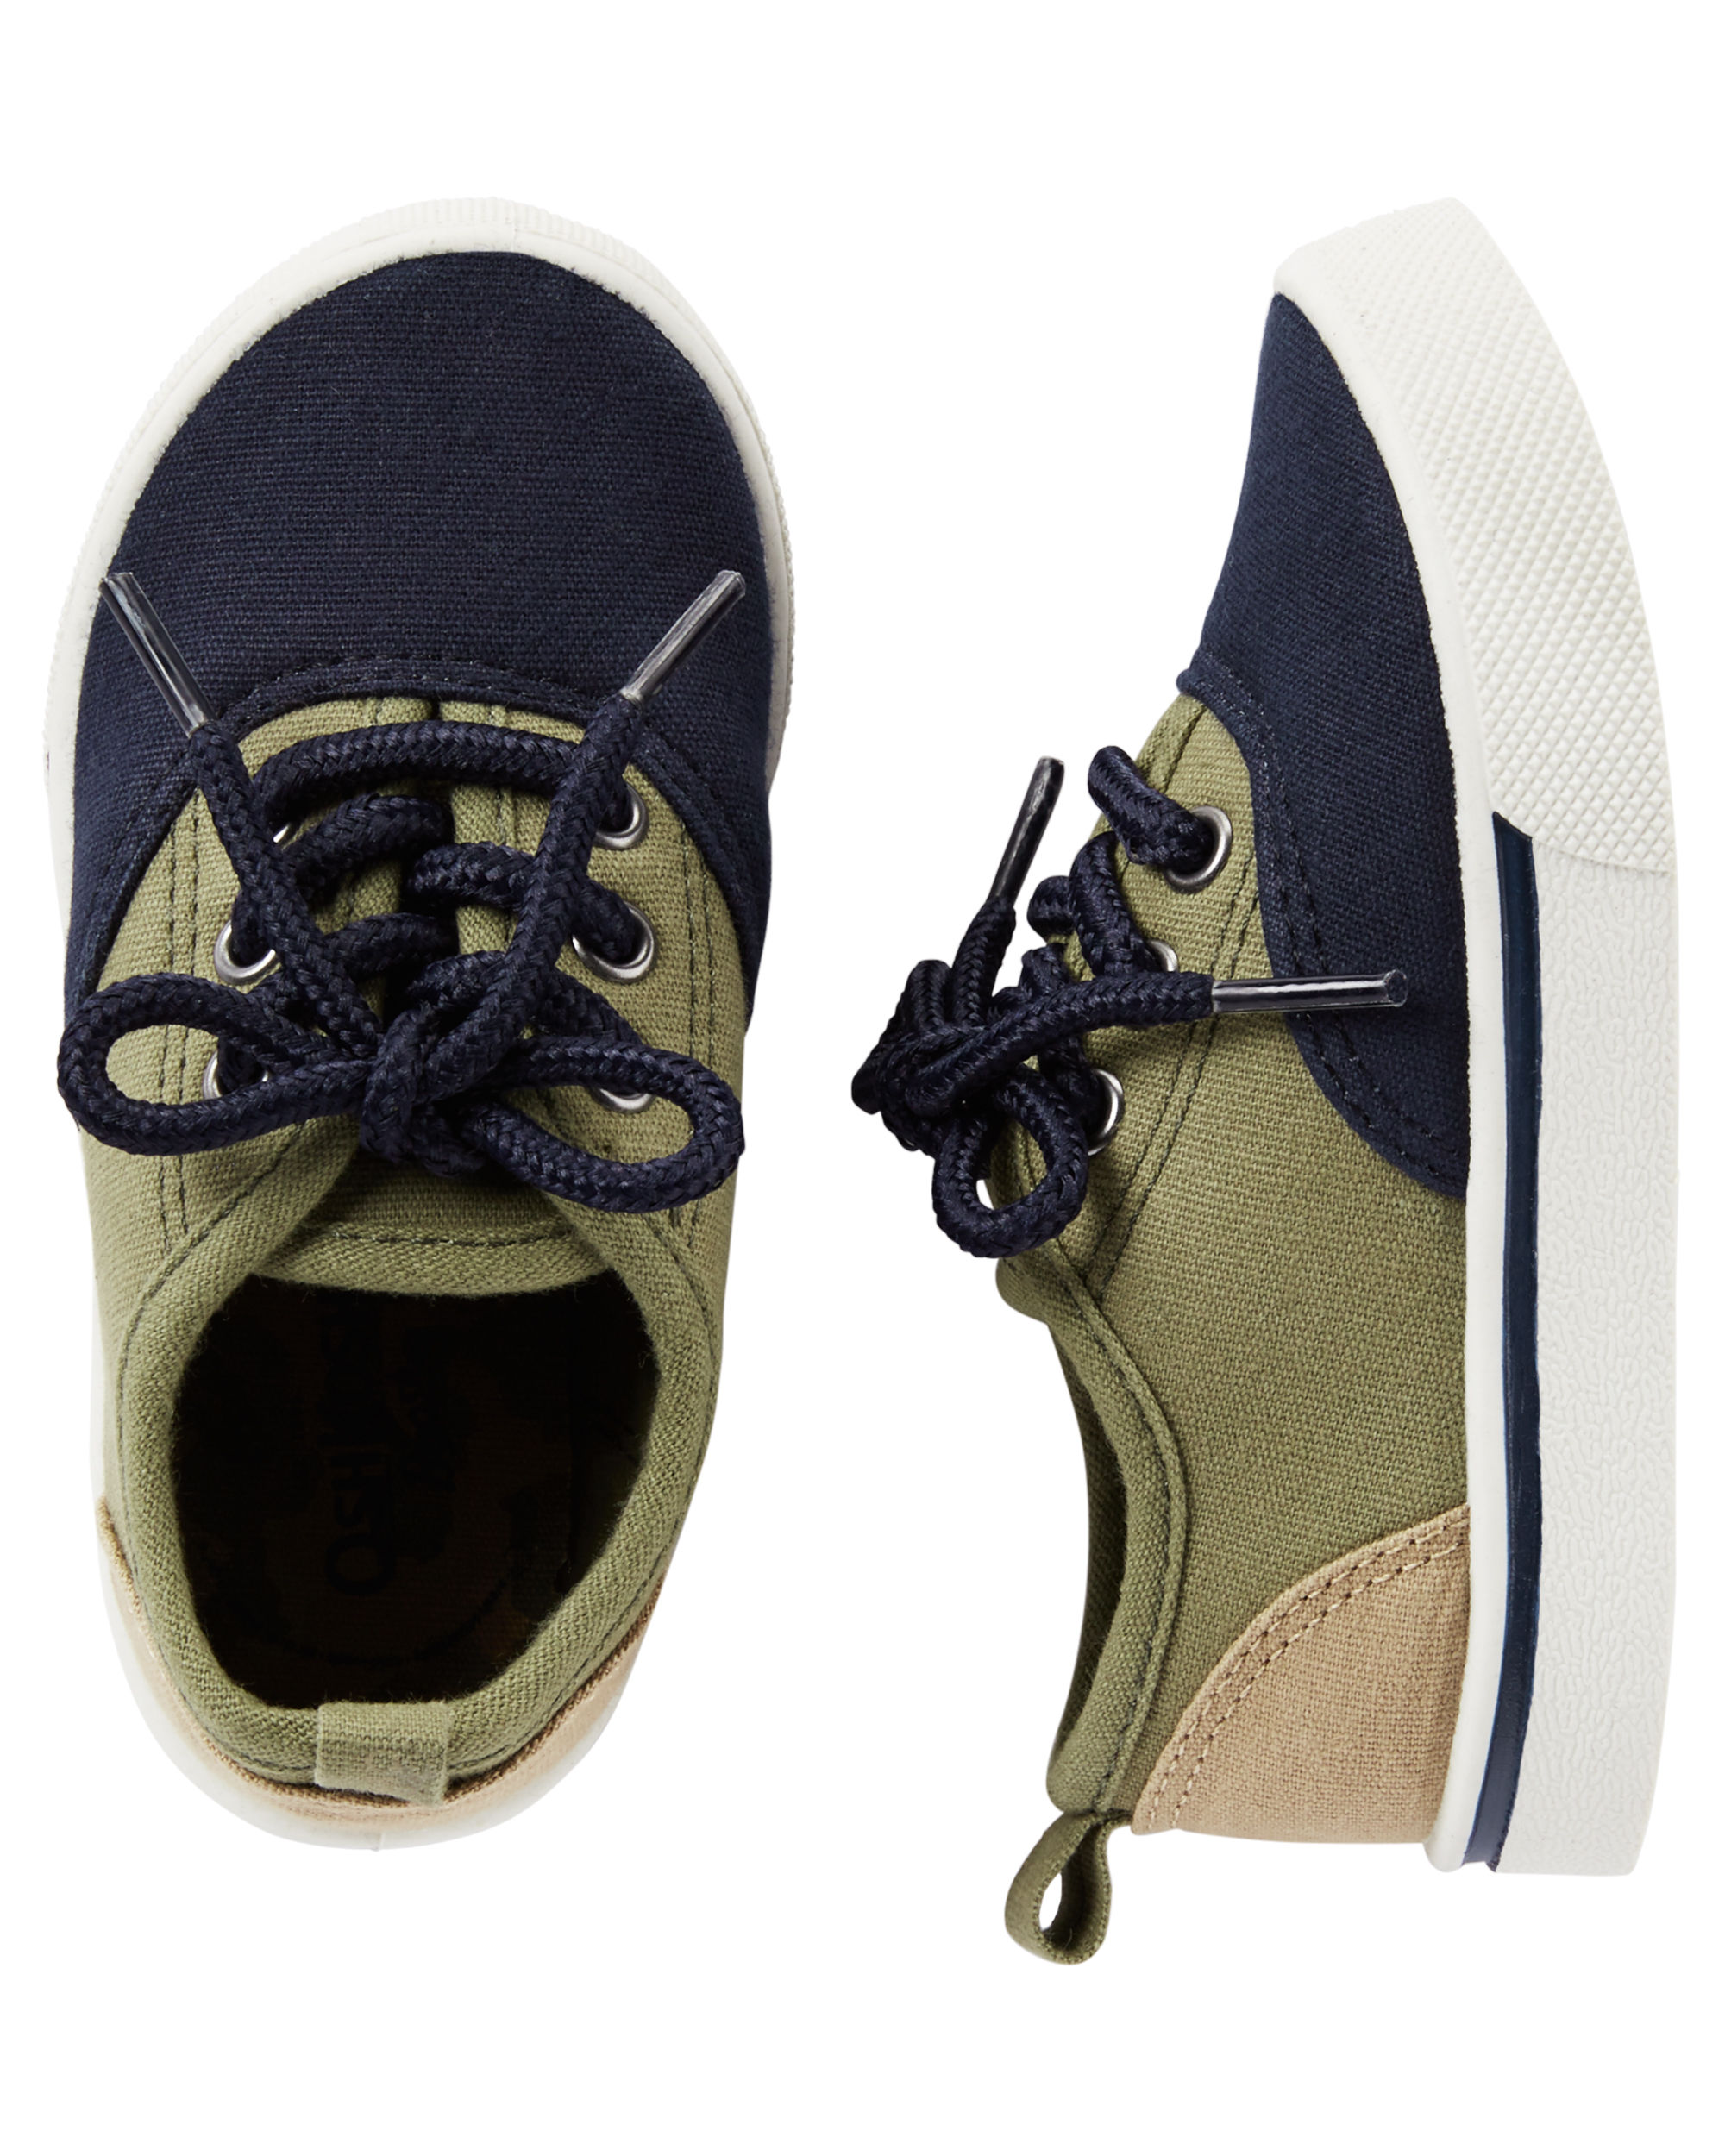 Oshkosh B'gosh Boys' Casual Sneakers-Navy/Khaki- Size 5